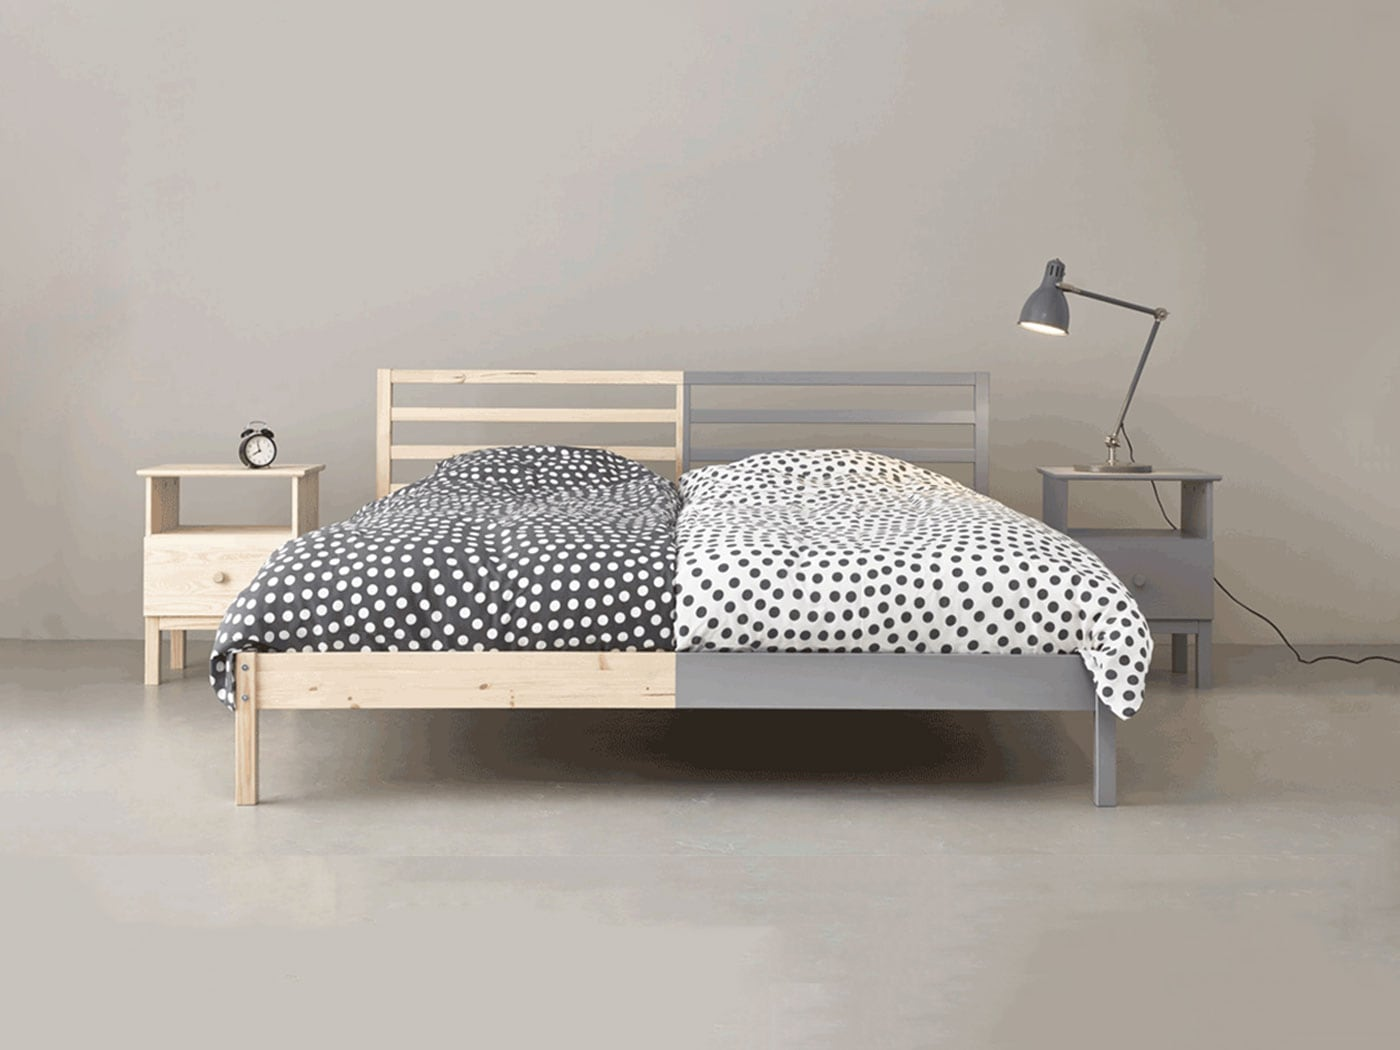 A double bed with half a side painted in grey, placed in a grey room.